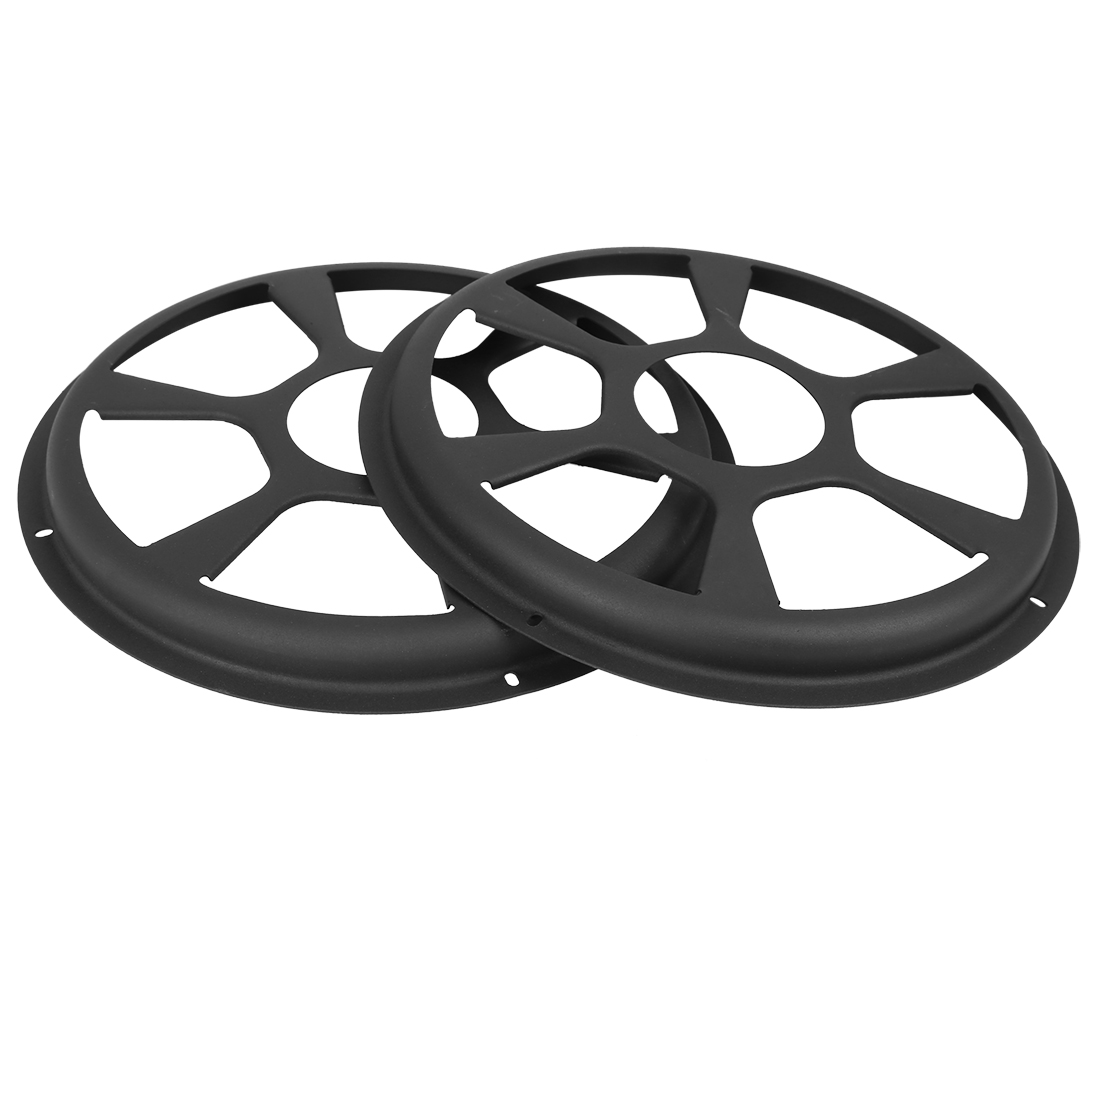 2pcs 10 Inch Black Car Auto Speaker Cover Hollow Mesh Subwoofer Grill Horn Guard